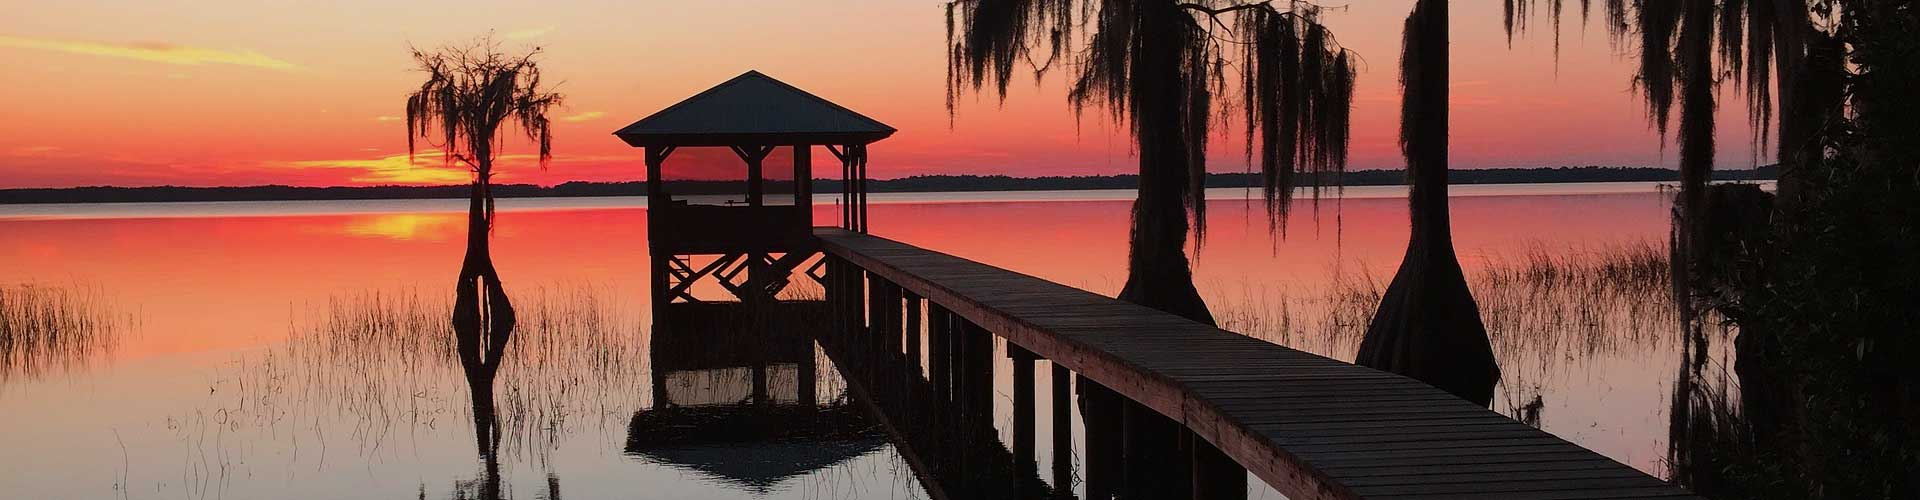 Florida lake sunset dock